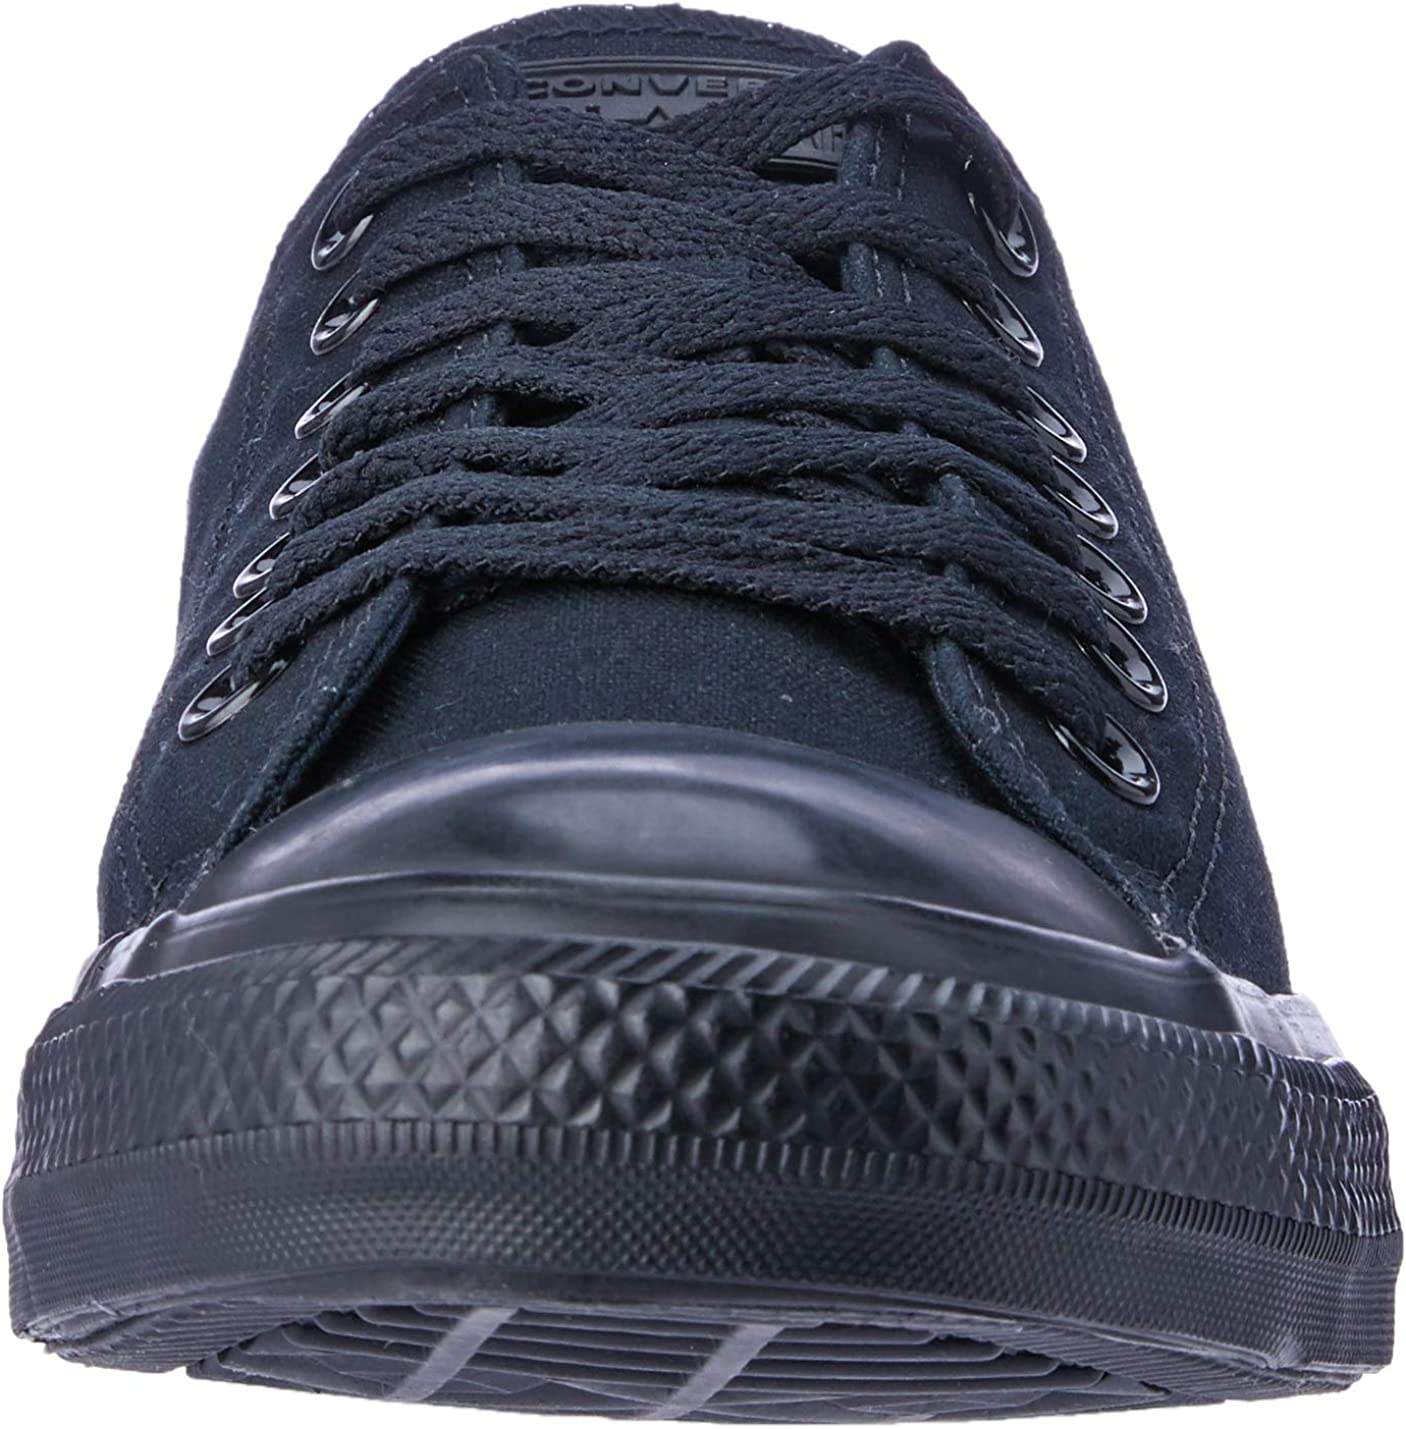 Converse Chuck Taylor All Star Madison Low Top, Tennis Femme Noir Monochrome